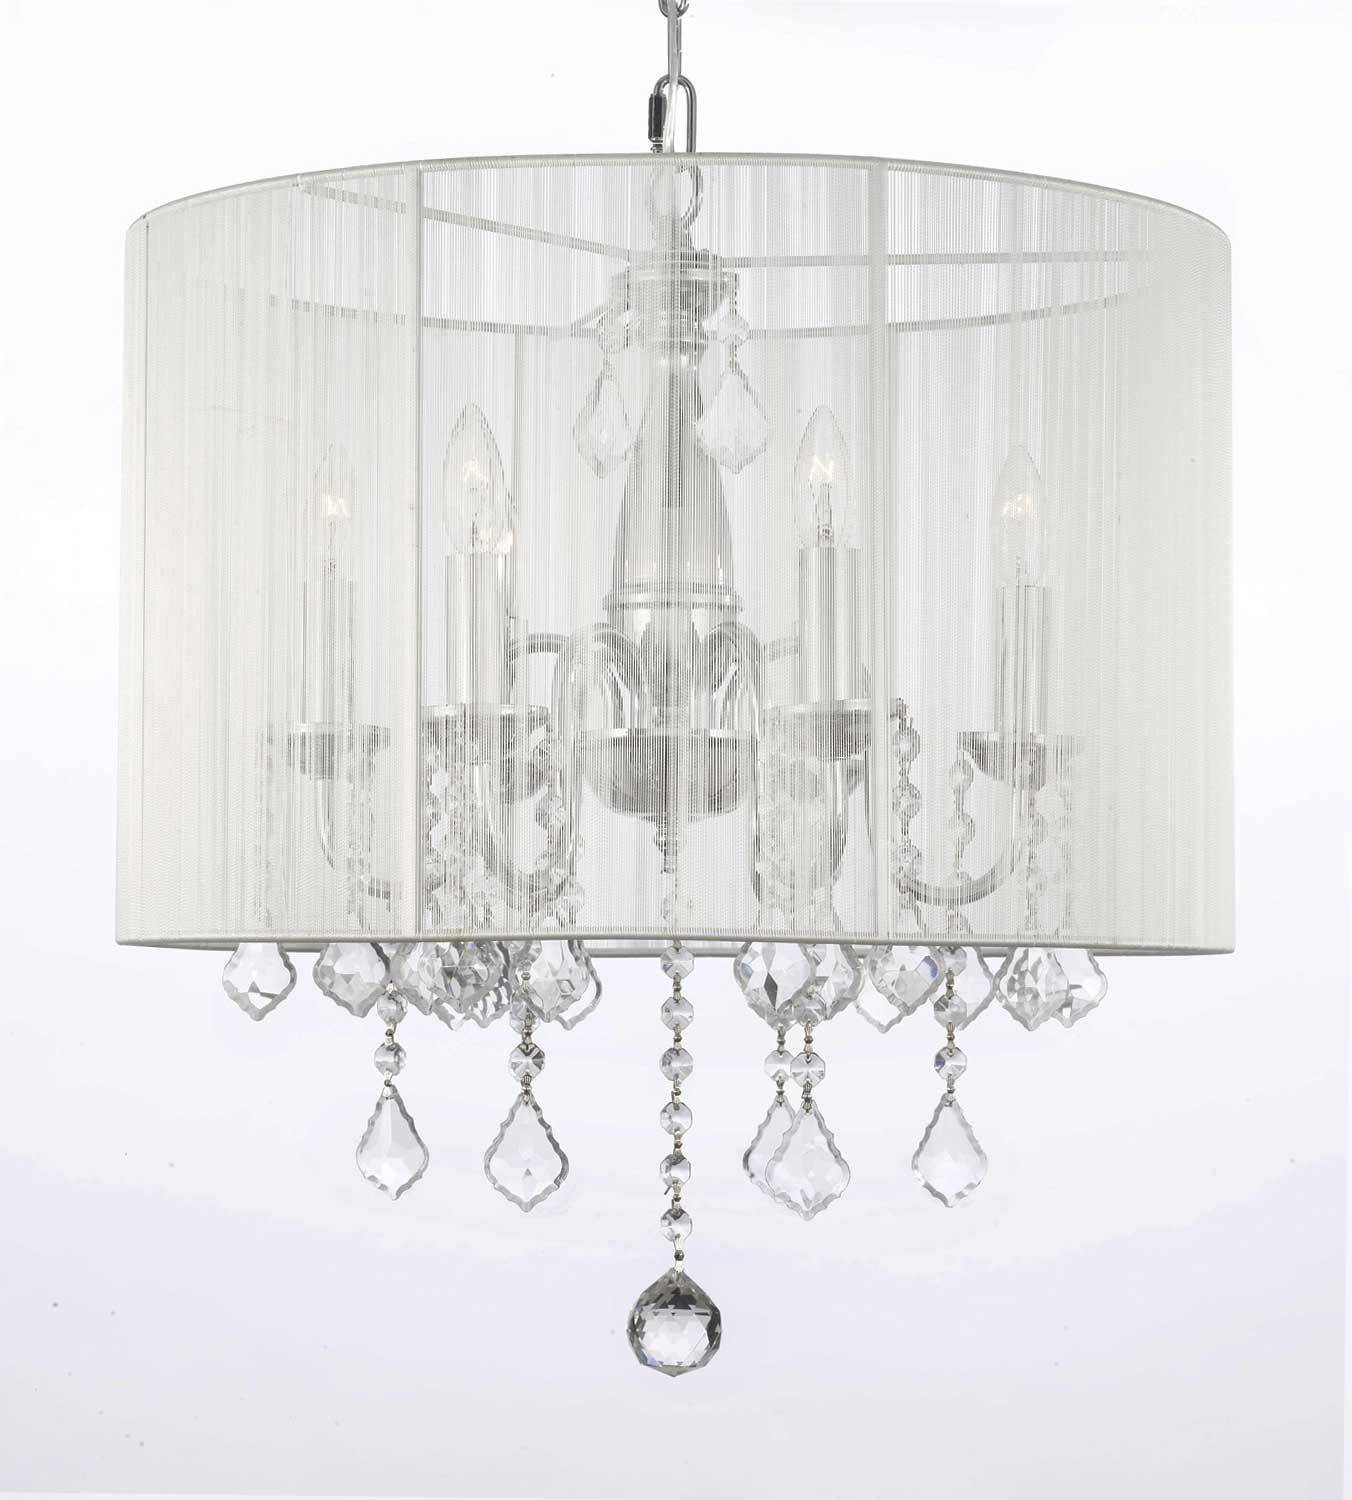 G7 1126 6 Gallery Chandeliers With Shades Crystal Chandelier Shade